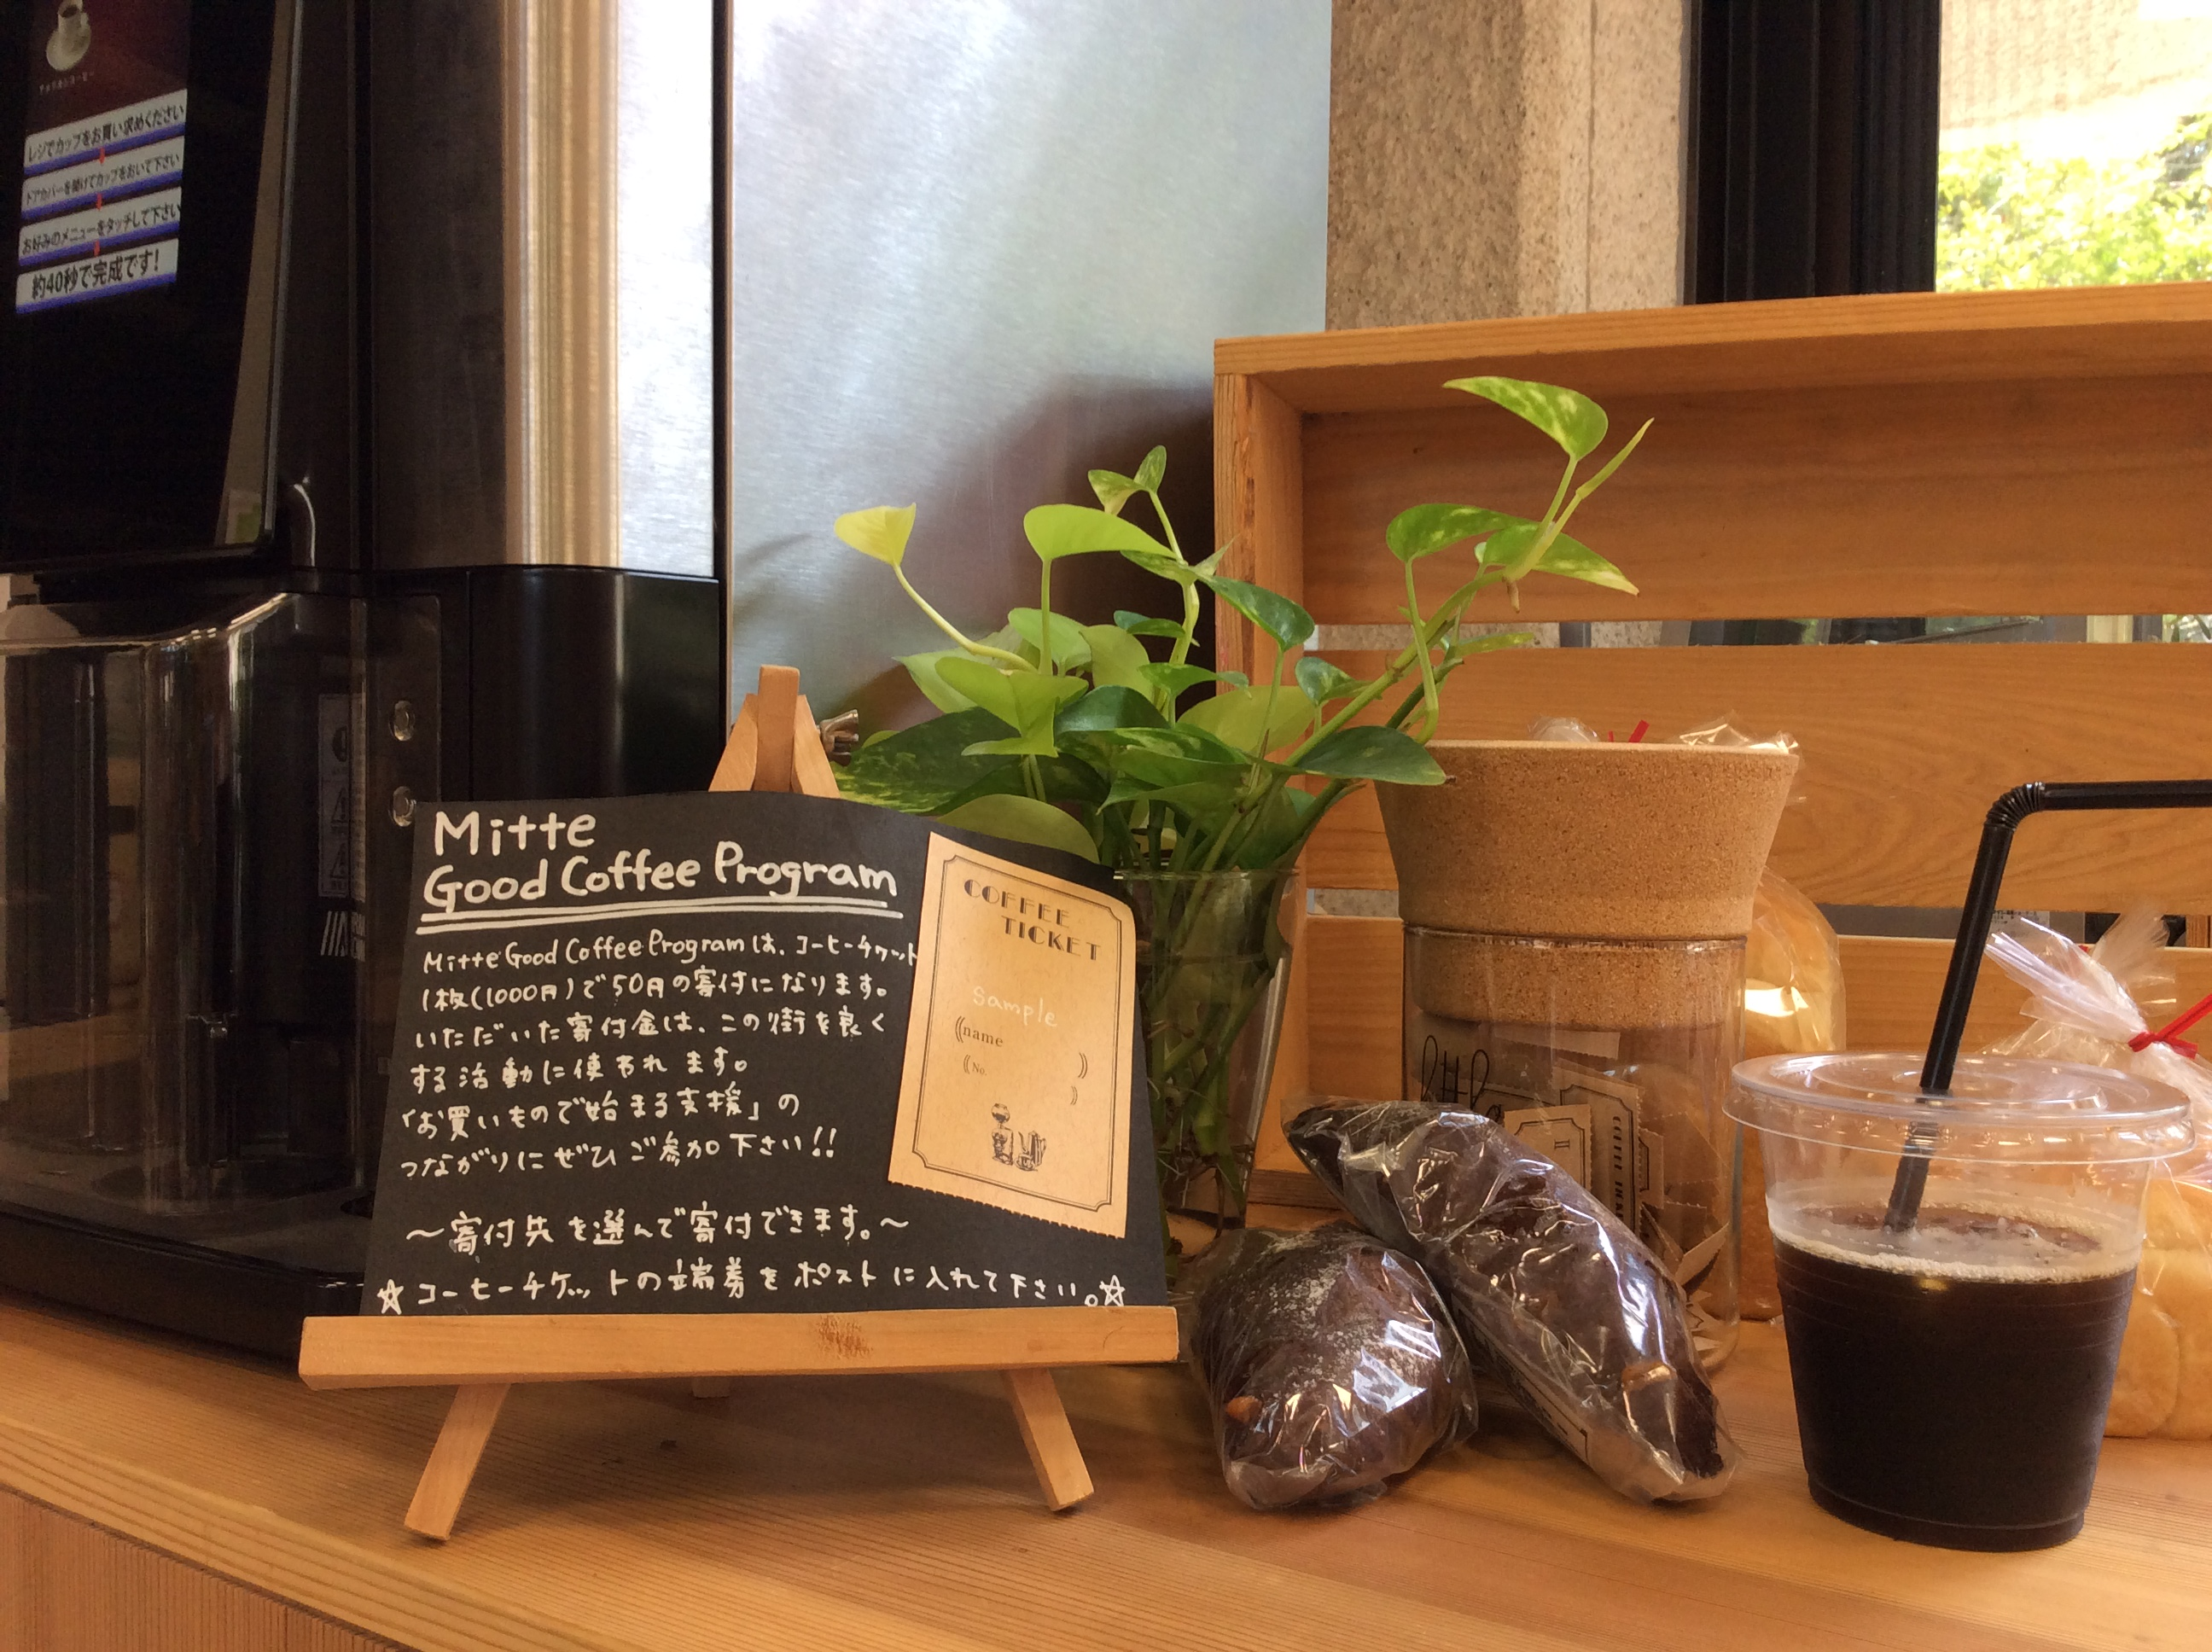 Mitte Good Coffee Program 3月のご報告